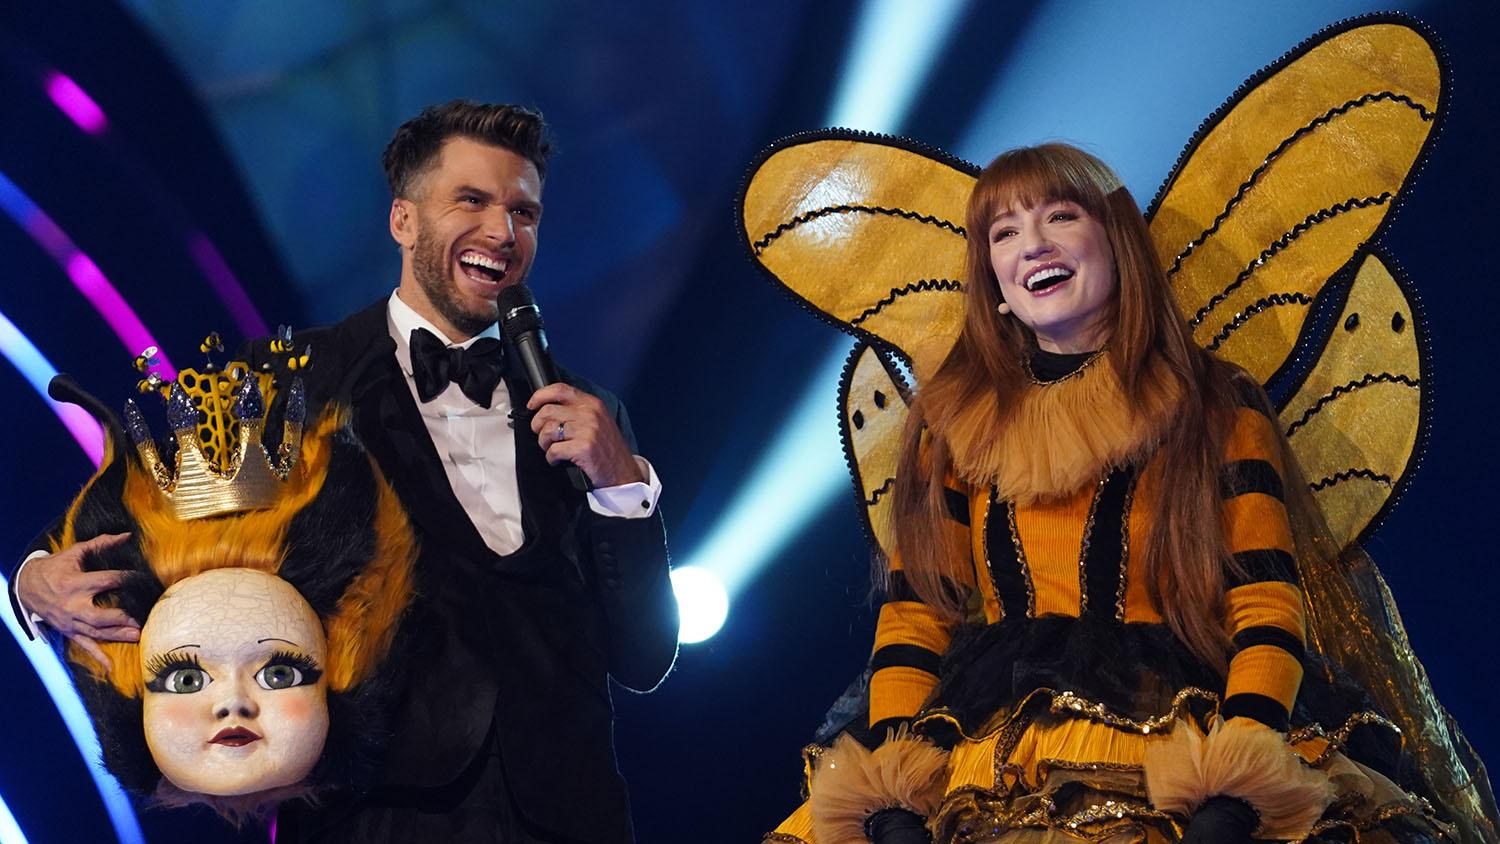 The Masked Singer UK All The Clues So Far Ahead Of The Final